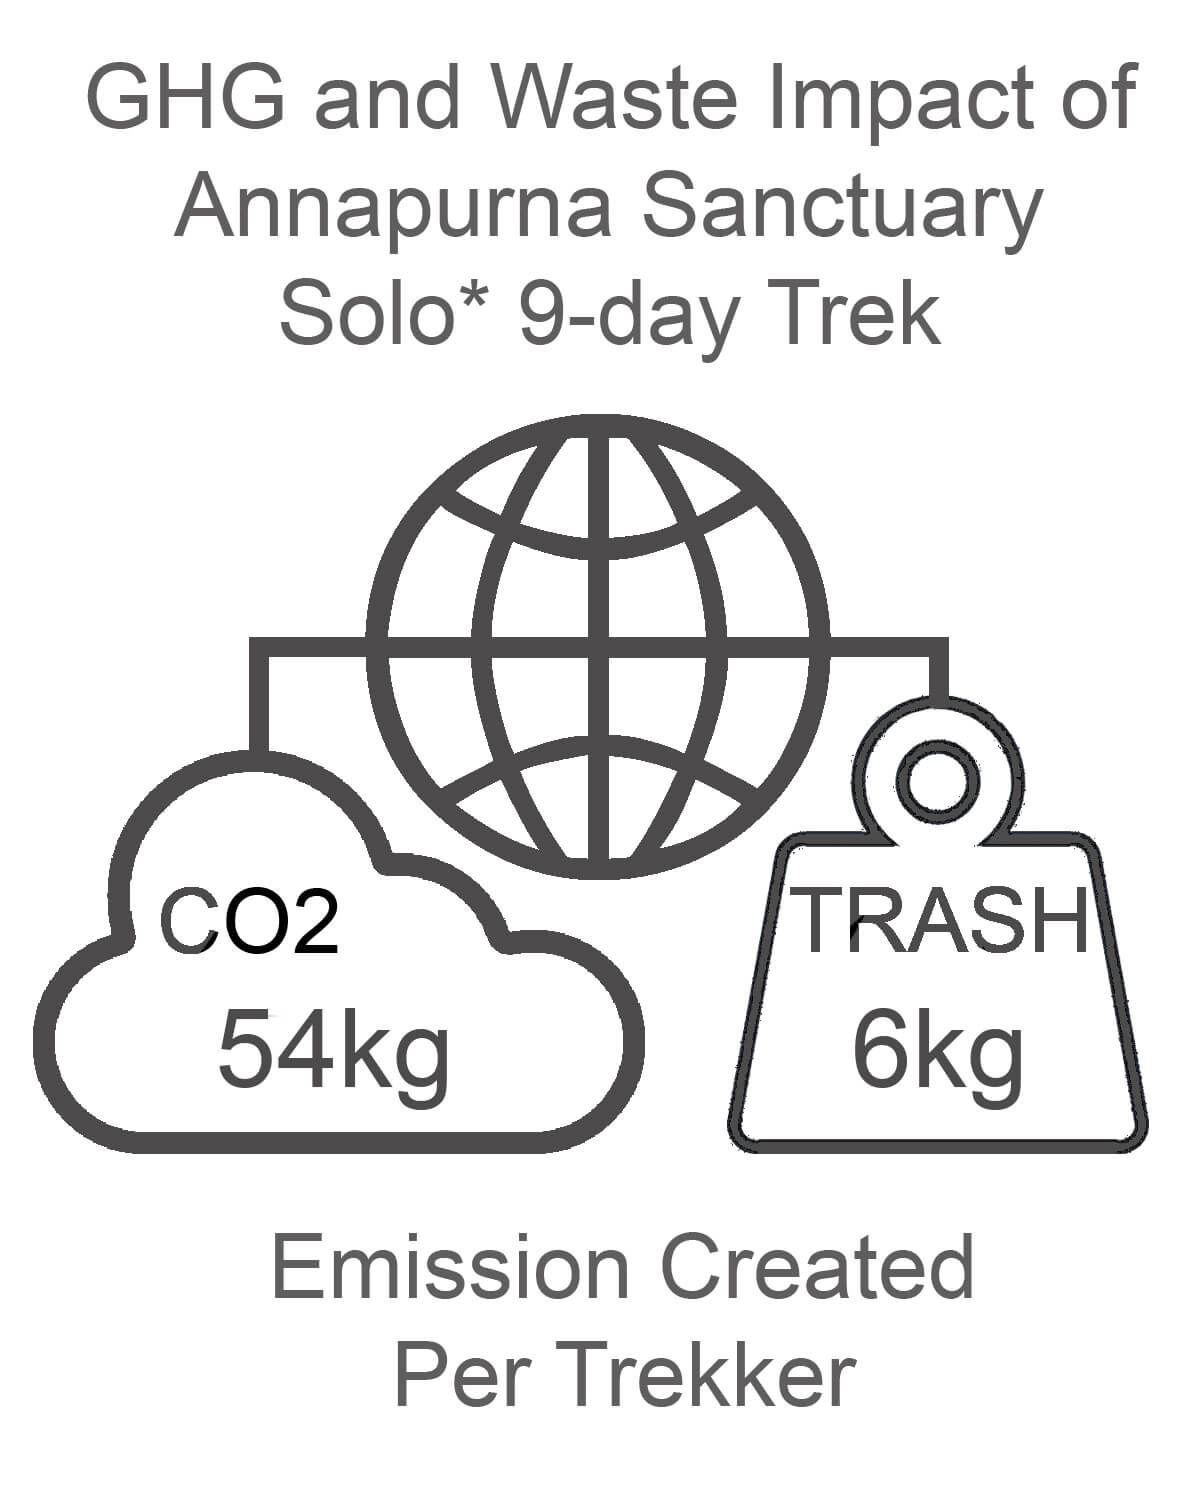 Annapurna Sanctuary GHG and Waste Impact SOLO